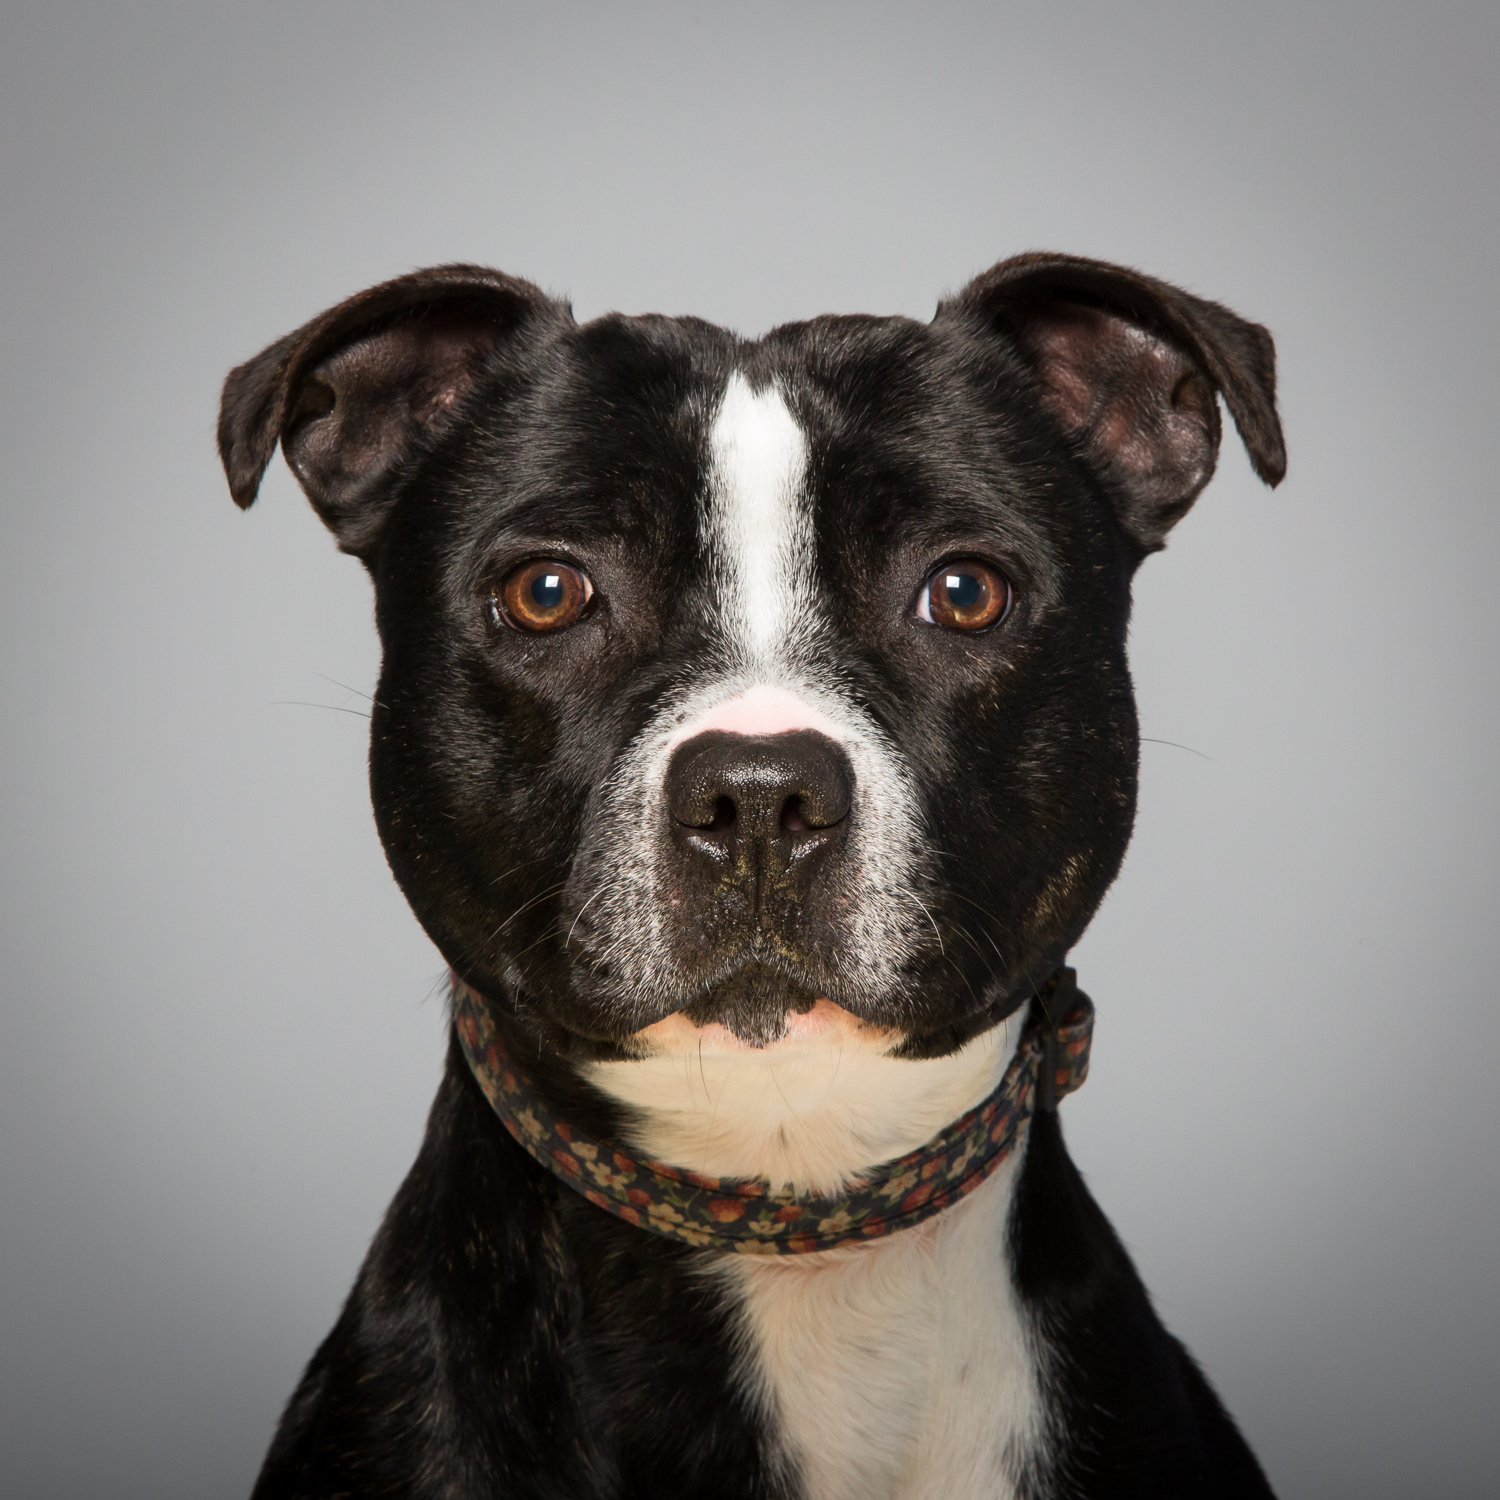 Nona the Staffordshire Bull Terrier. Rescue dog looking for a new home at  The Kit Wilson Trust